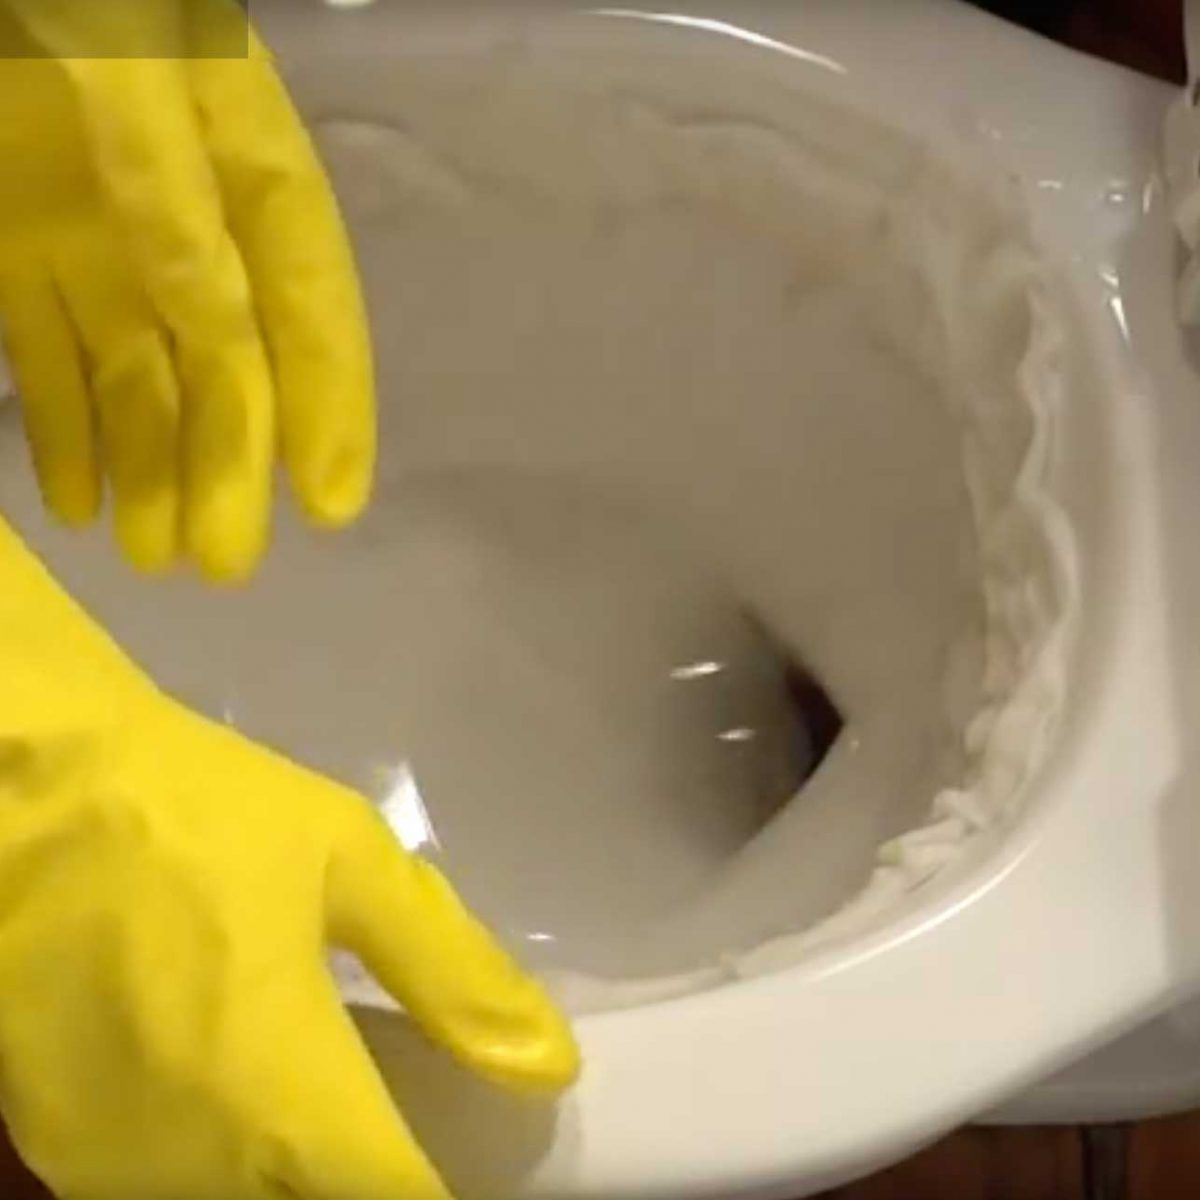 How To Remove Hard Water Stains From Toilet Bowl Hard